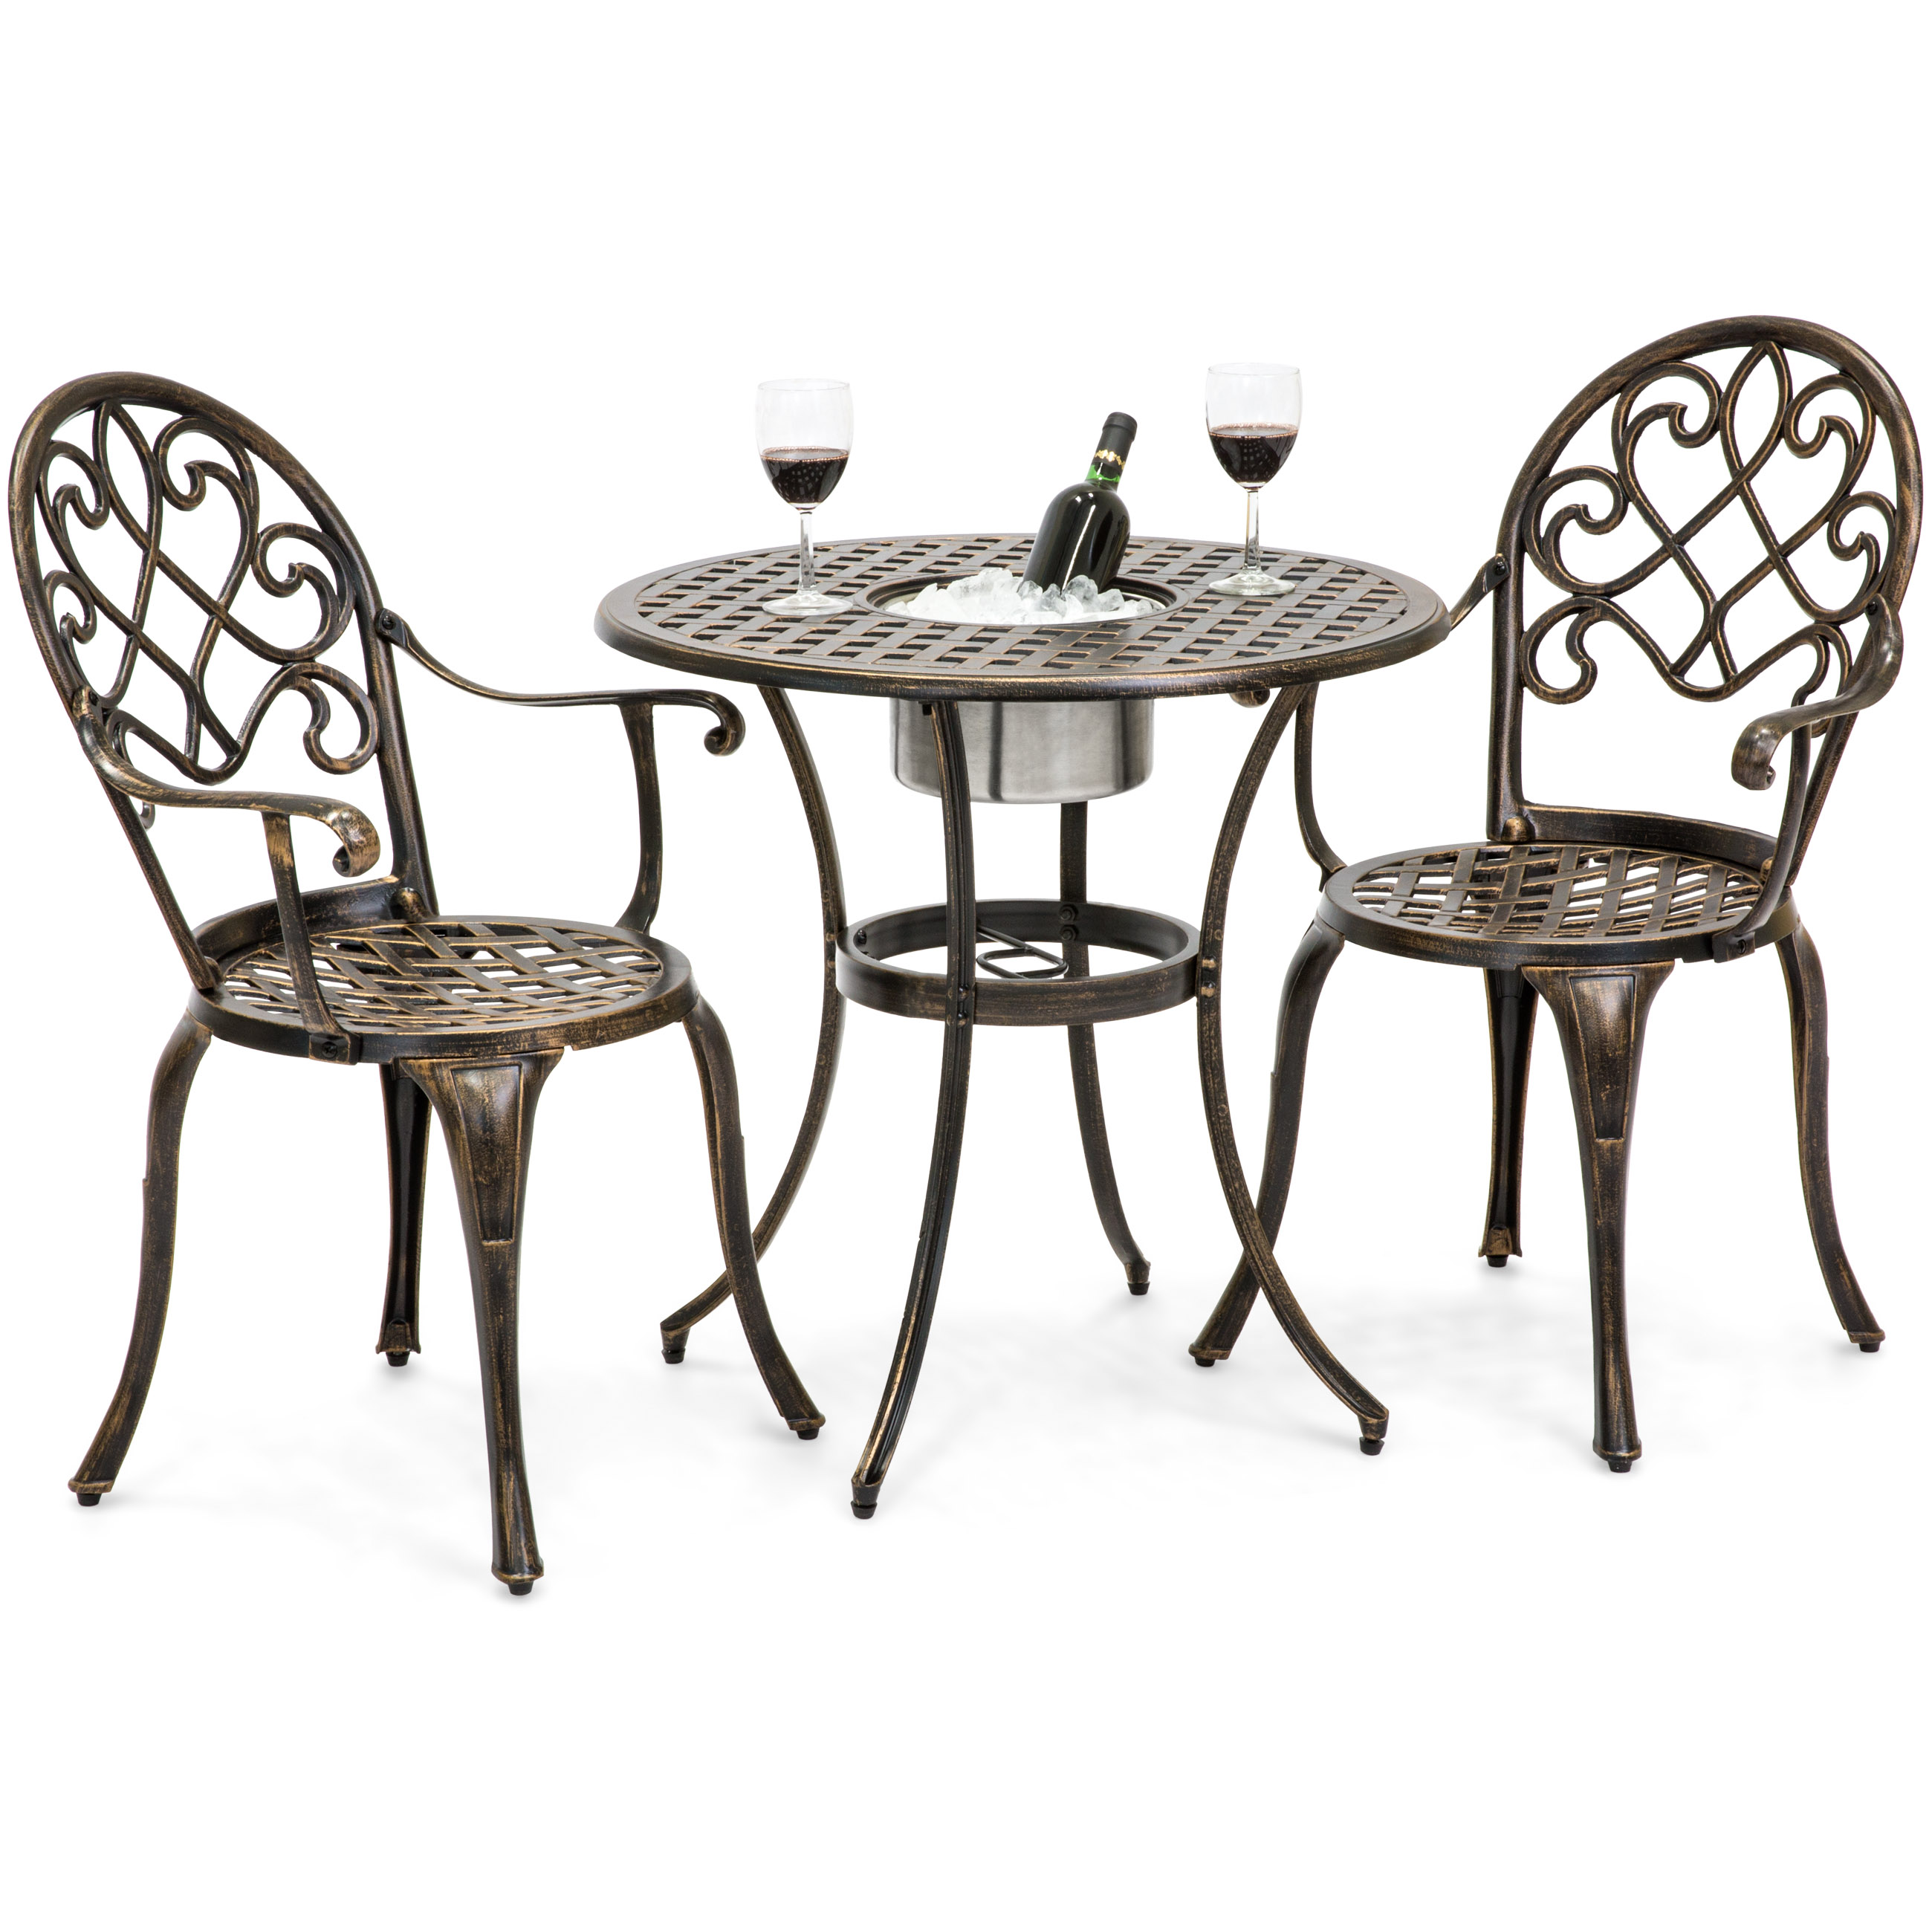 Best Choice Products Cast Aluminum Patio Bistro Table Set W/ Attached Ice  Bucket, 2